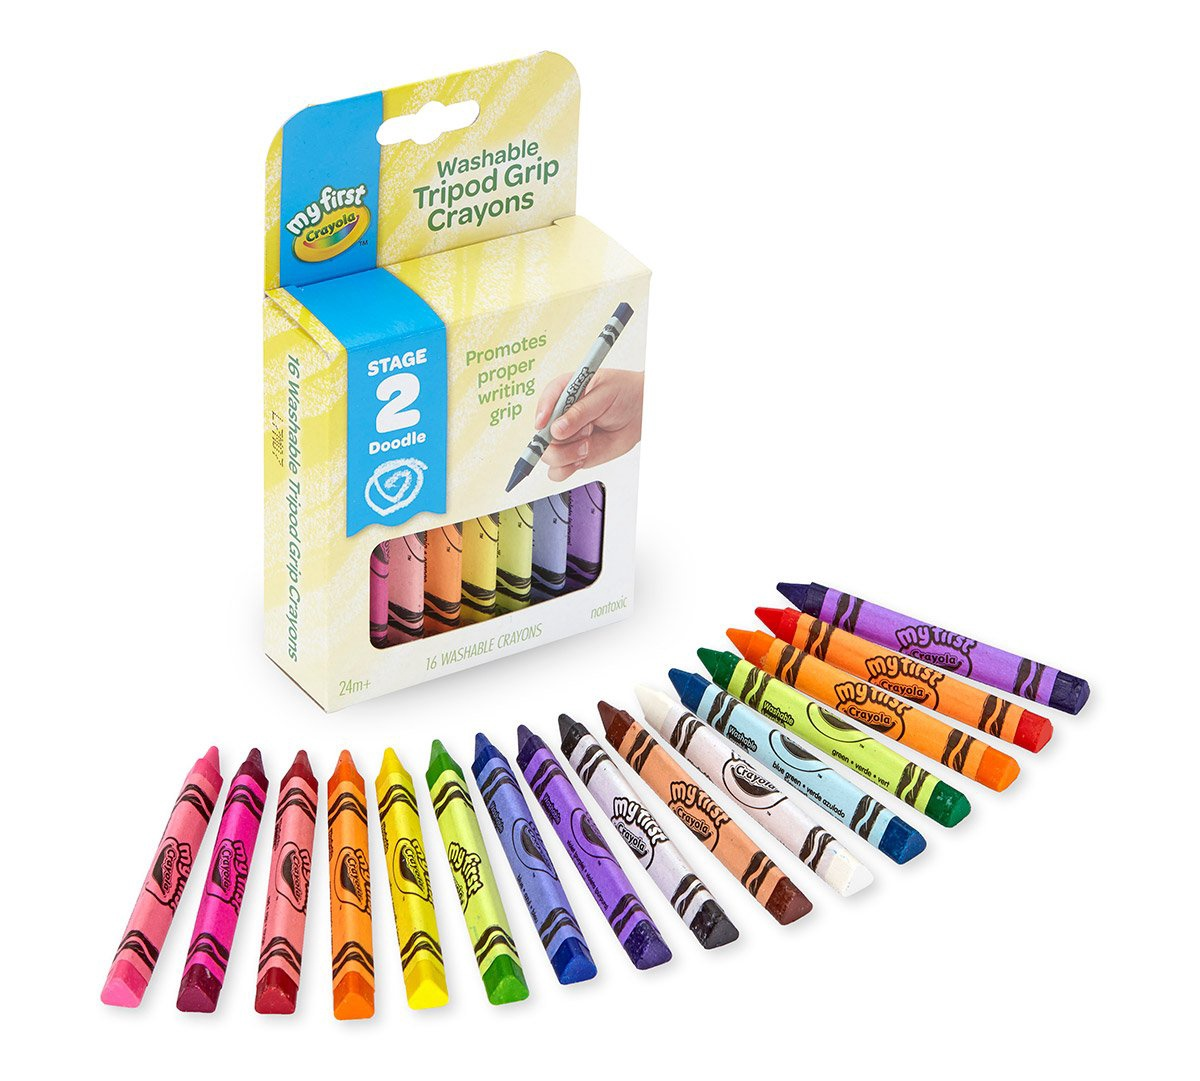 WASHABLE TRIPOD GRIP CRAYONS 16 CT